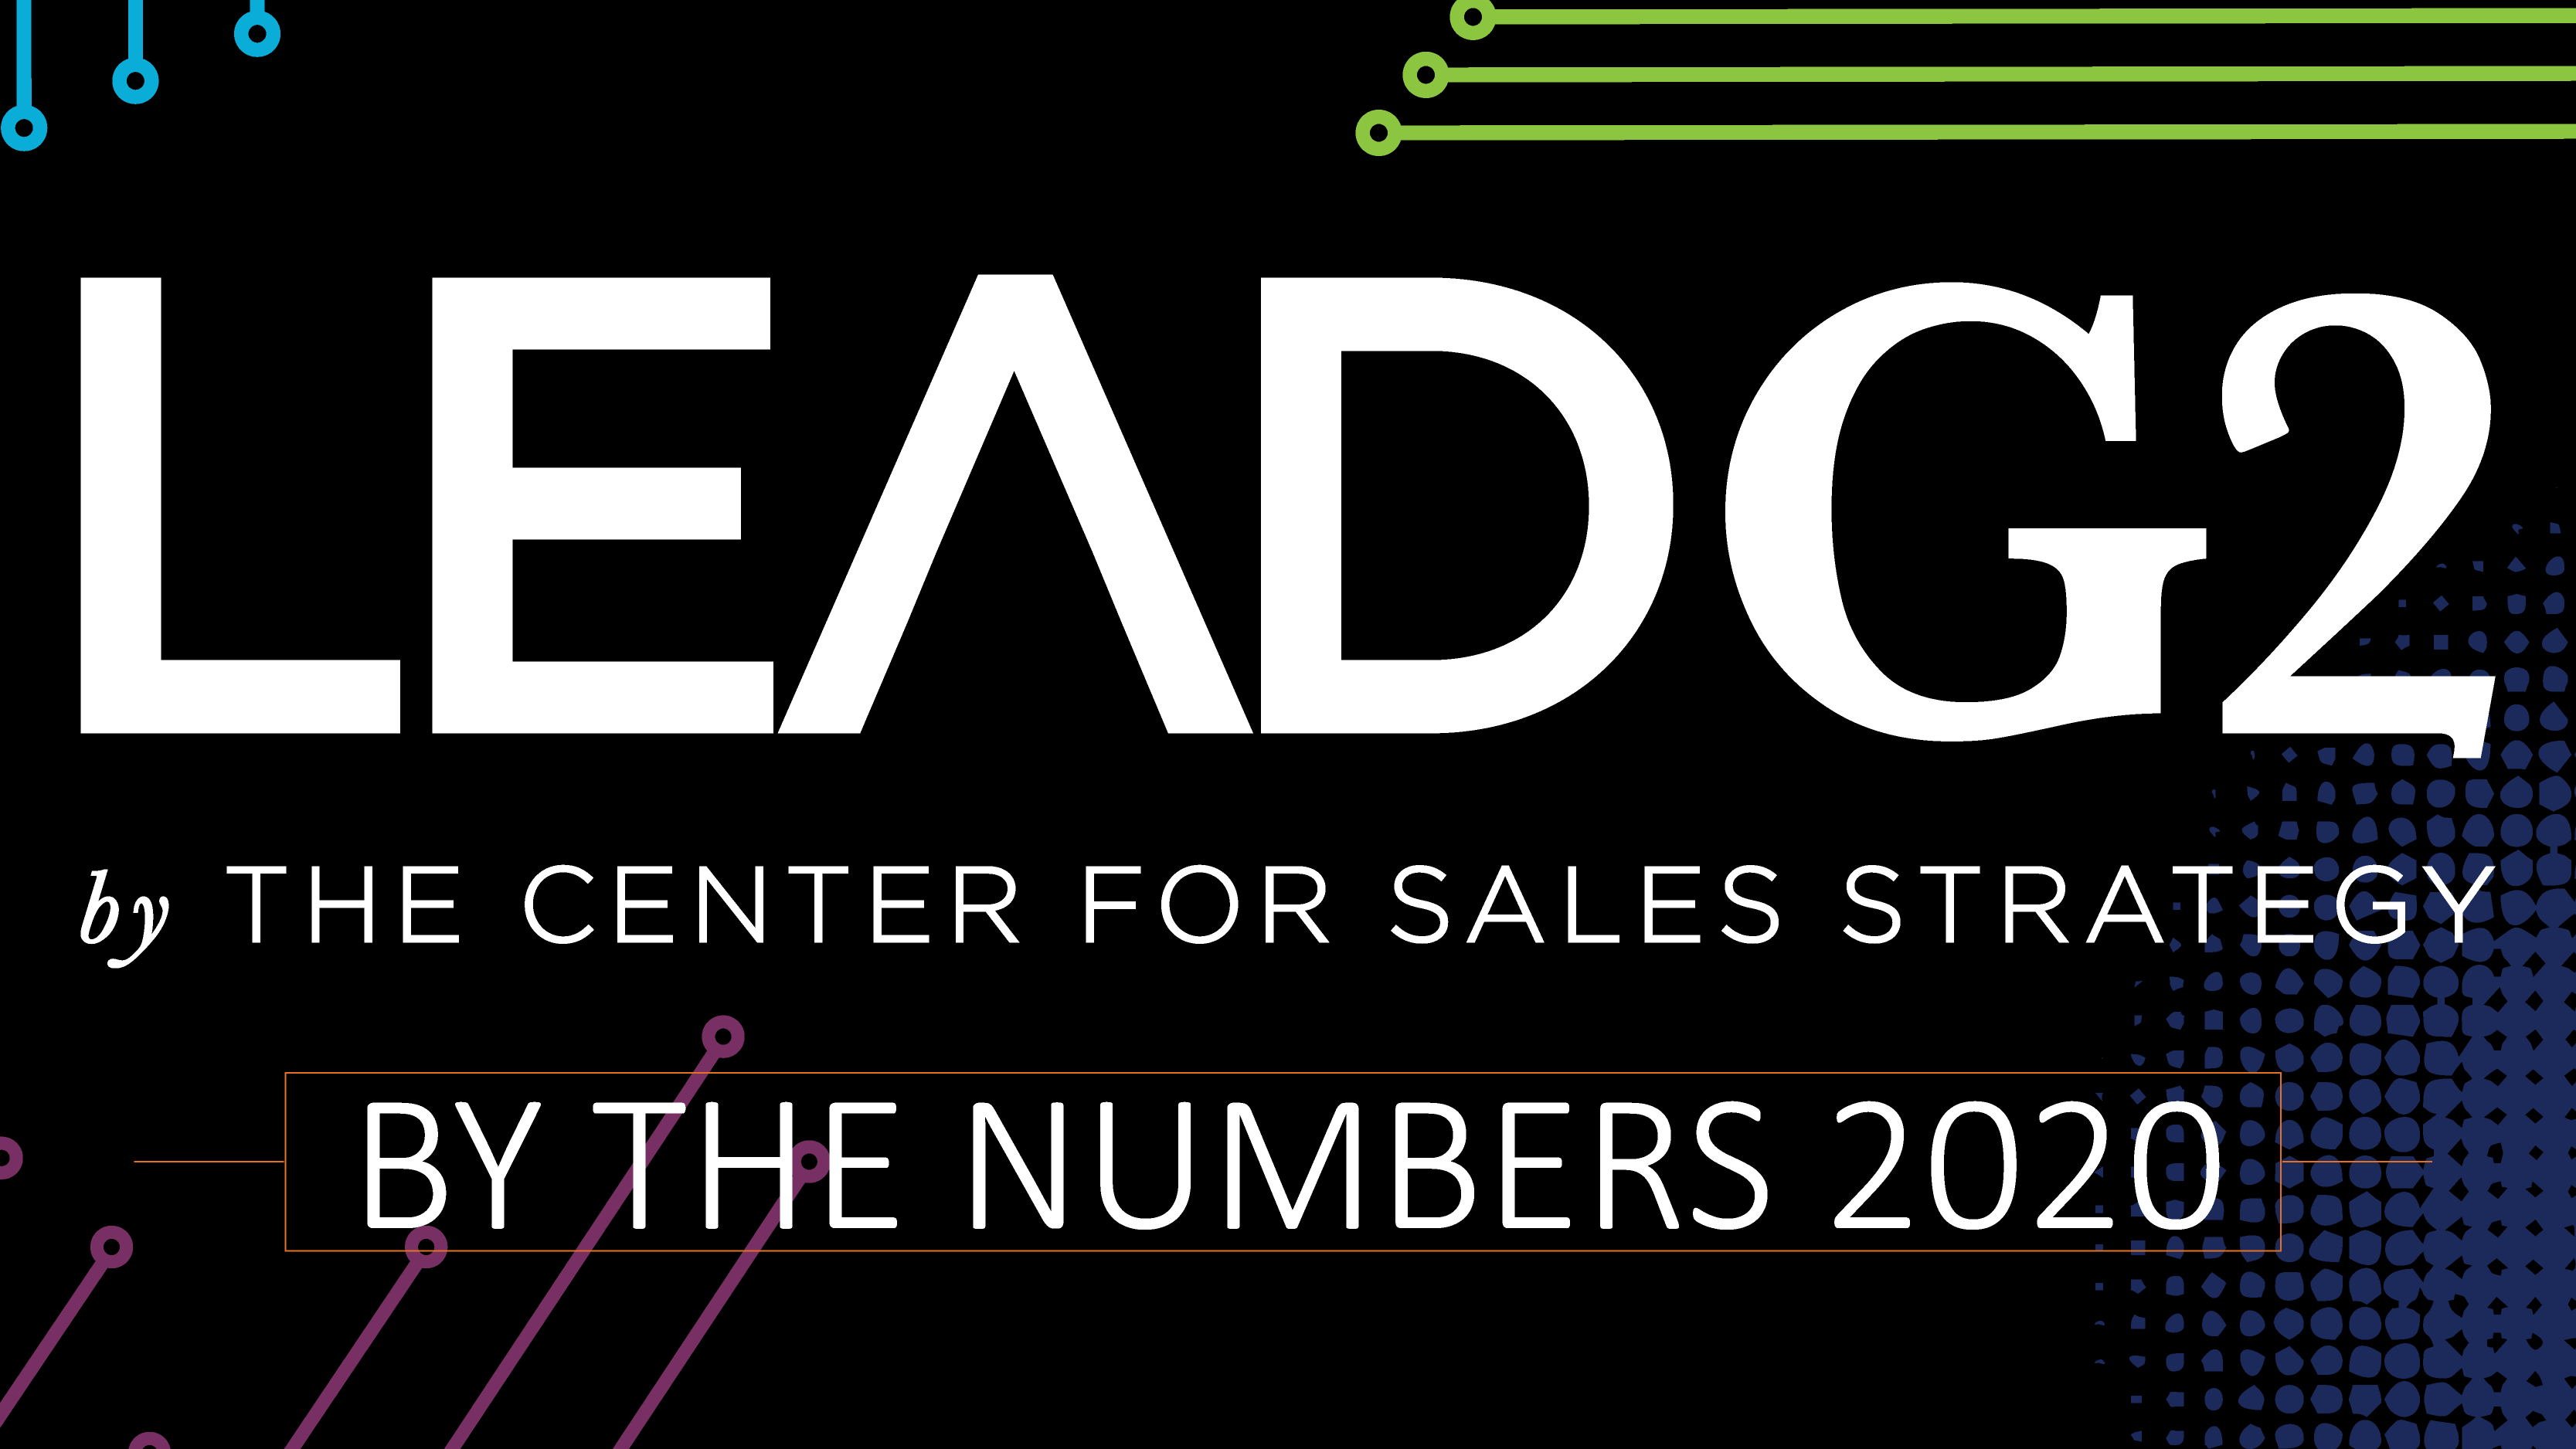 LeadG2 By The Numbers 2020 [INFOGRAPHIC]